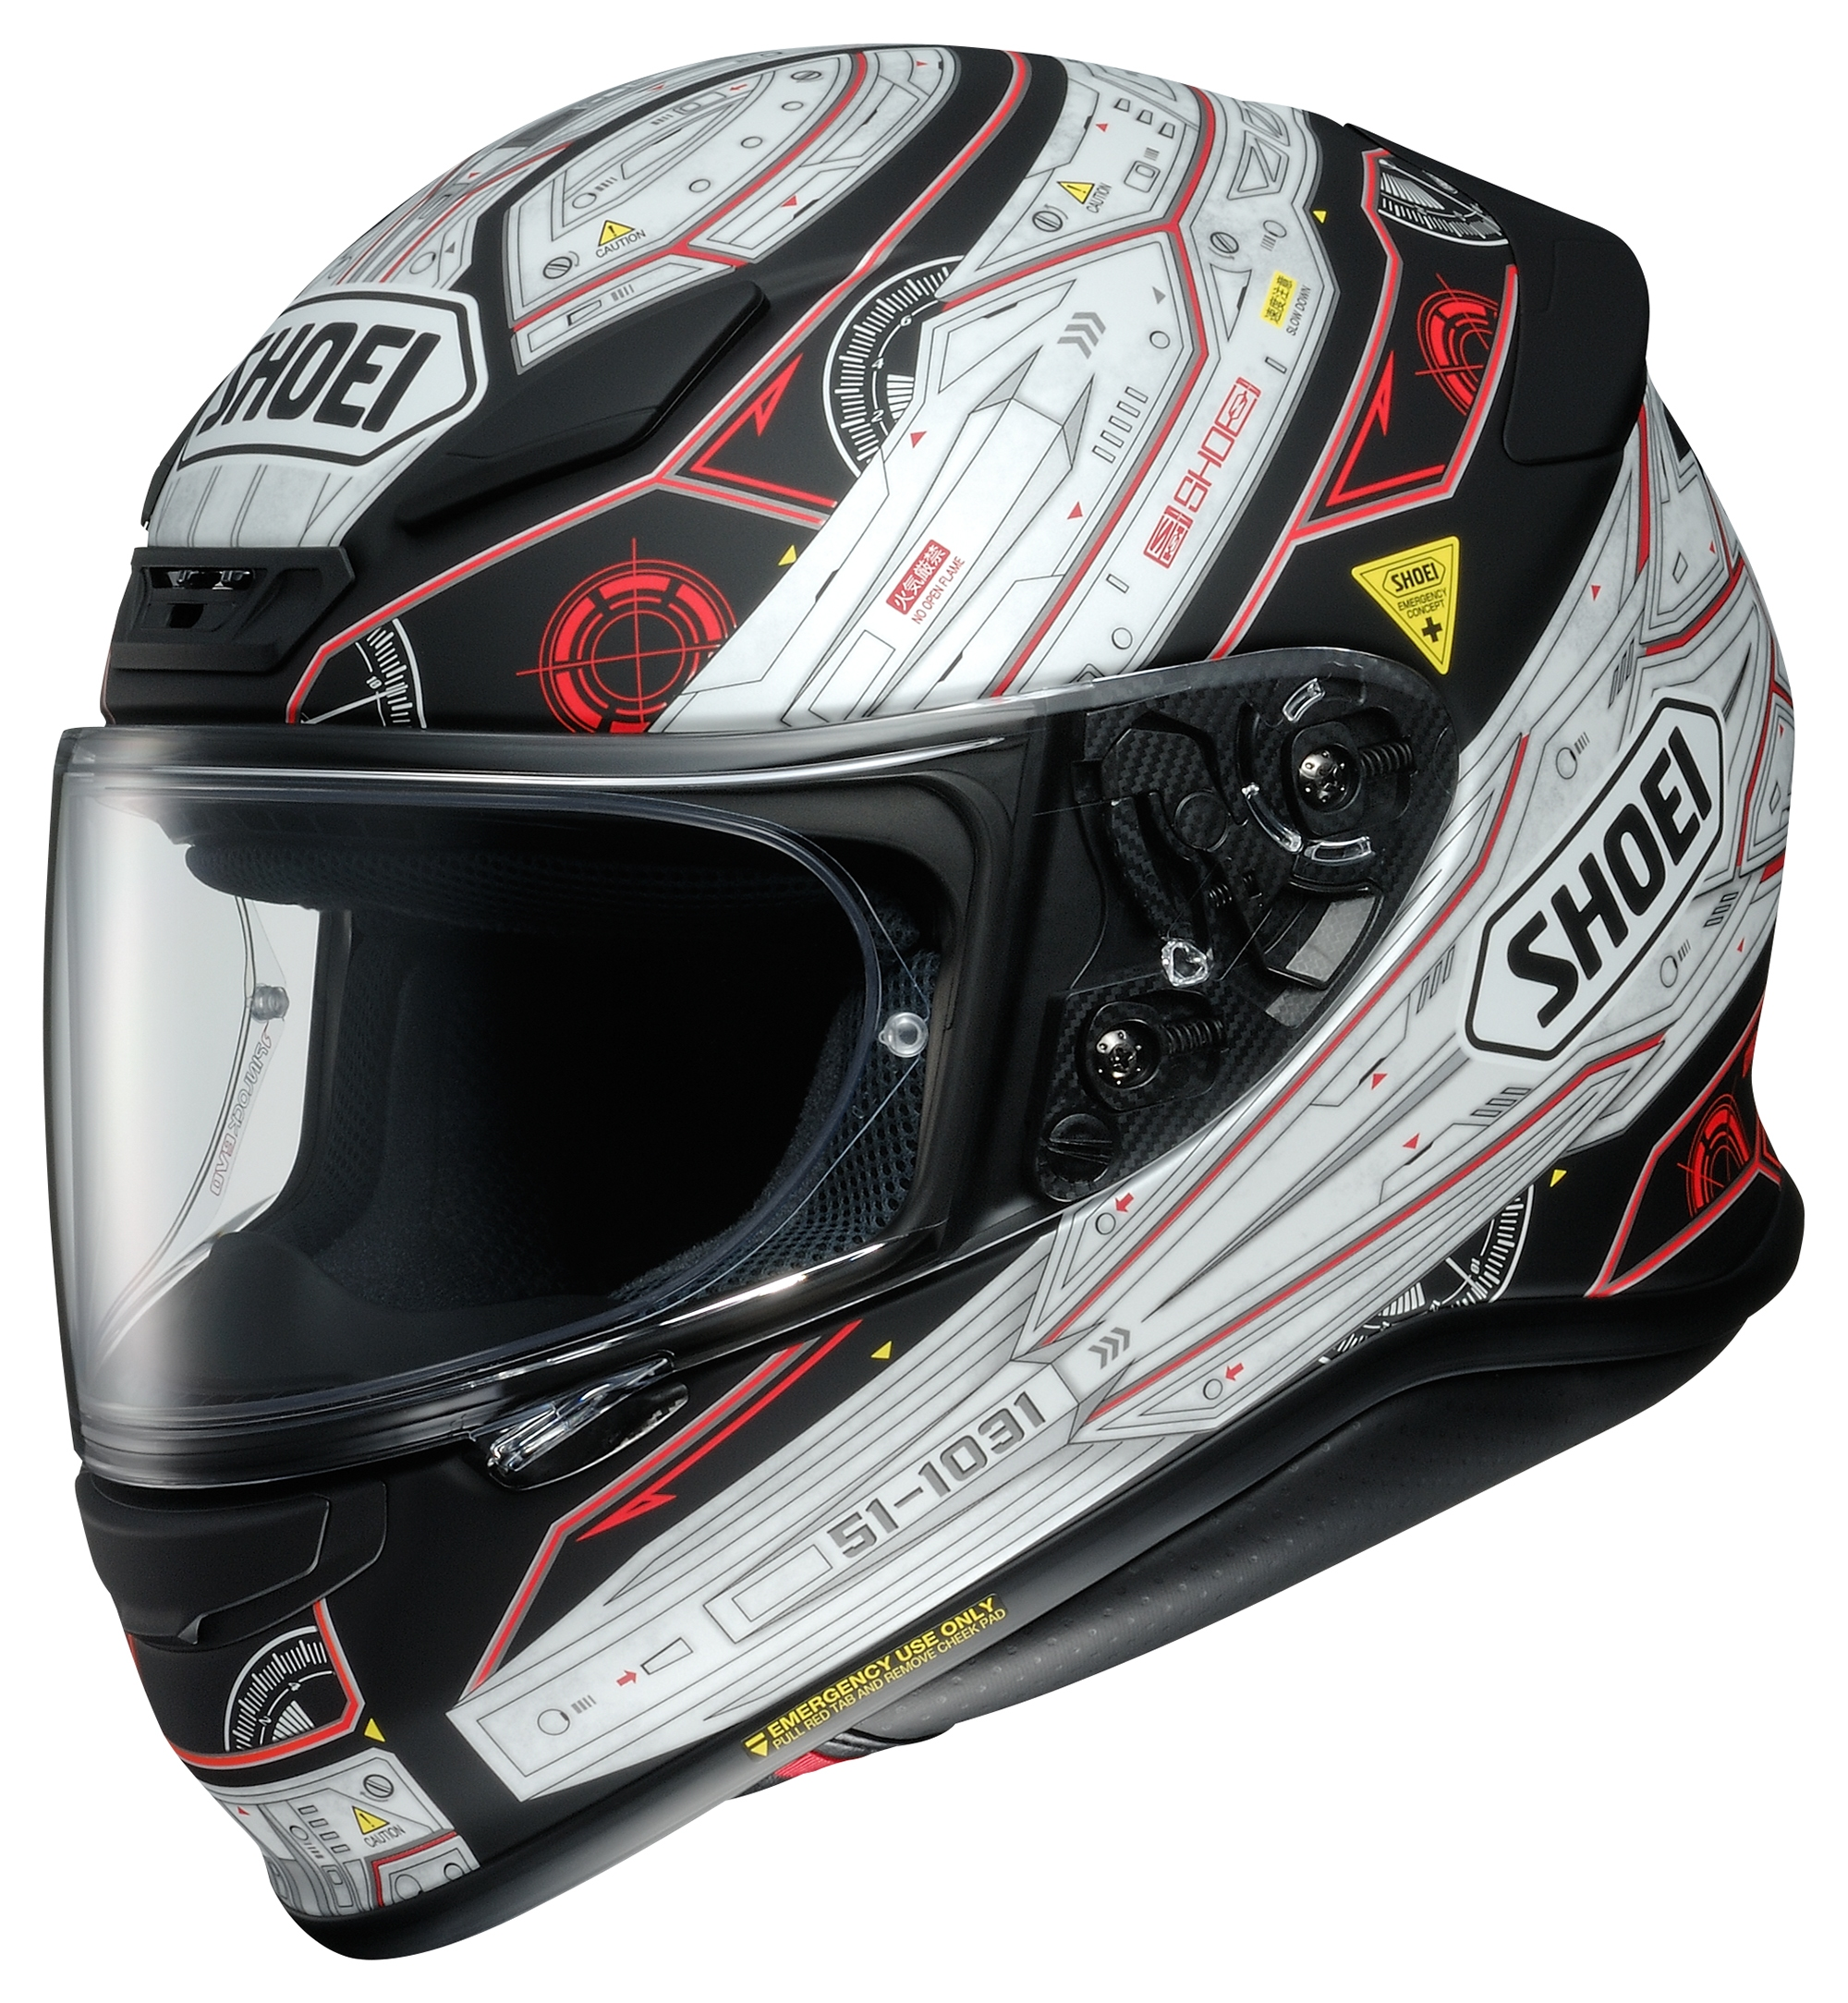 shoei rf 1200 vessel helmet 24 off revzilla. Black Bedroom Furniture Sets. Home Design Ideas